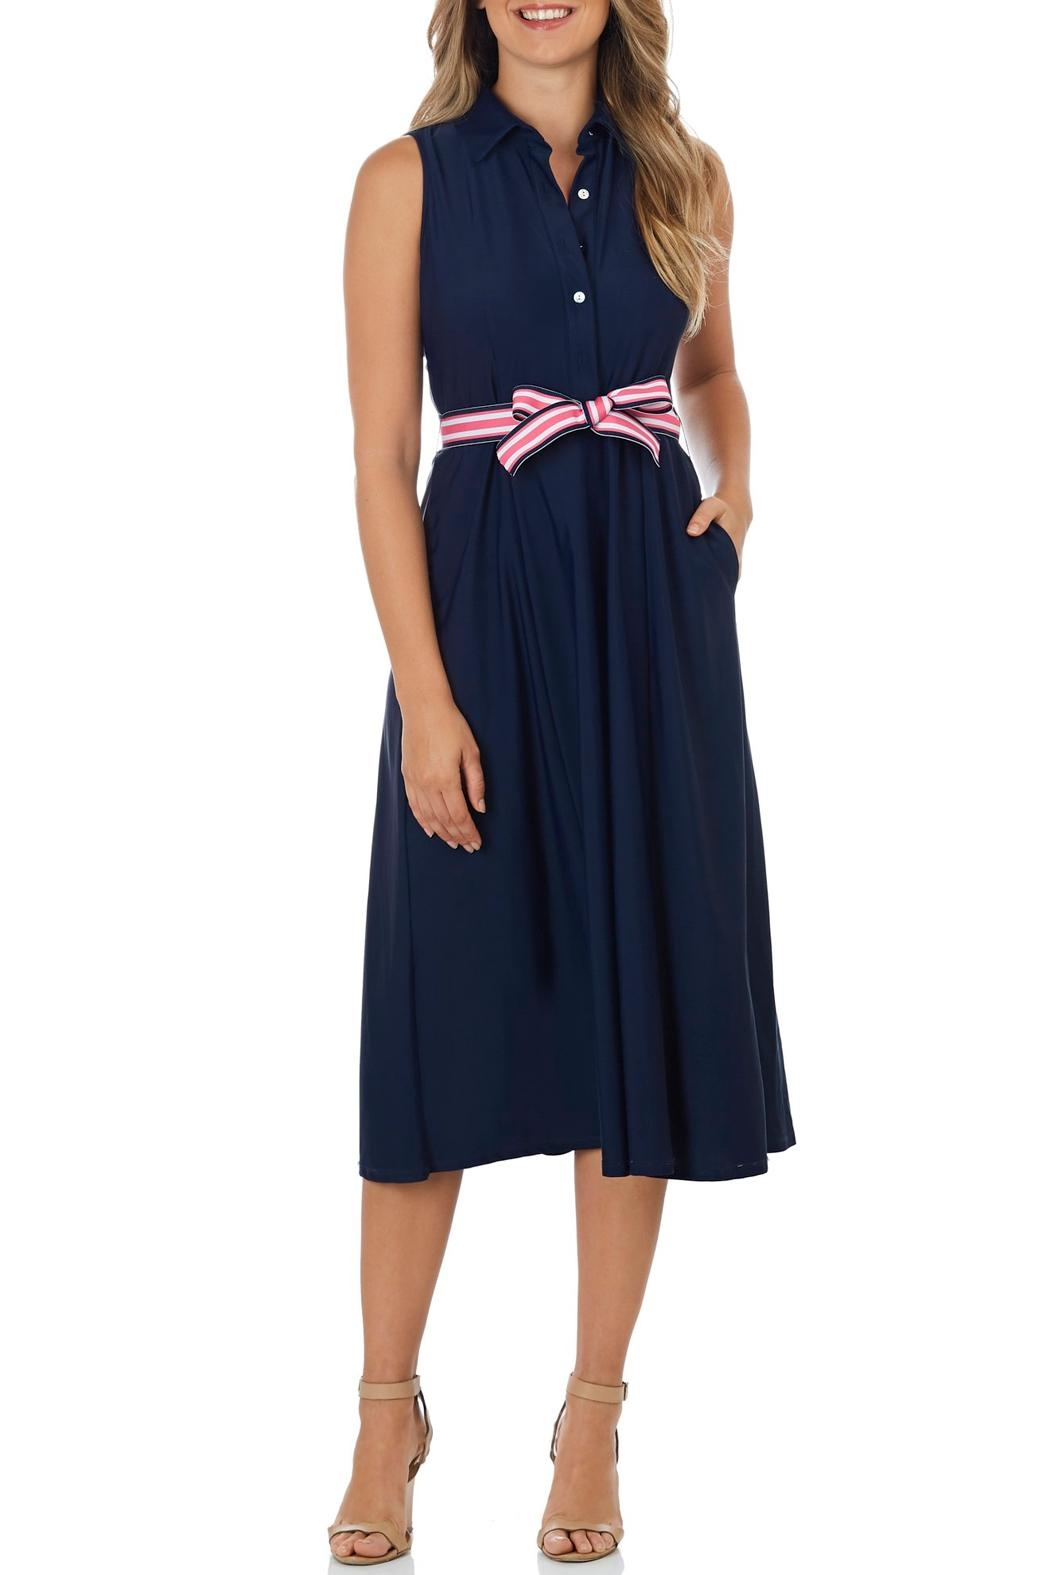 Jude Connally Ashlyn Shirt Dress - Front Cropped Image